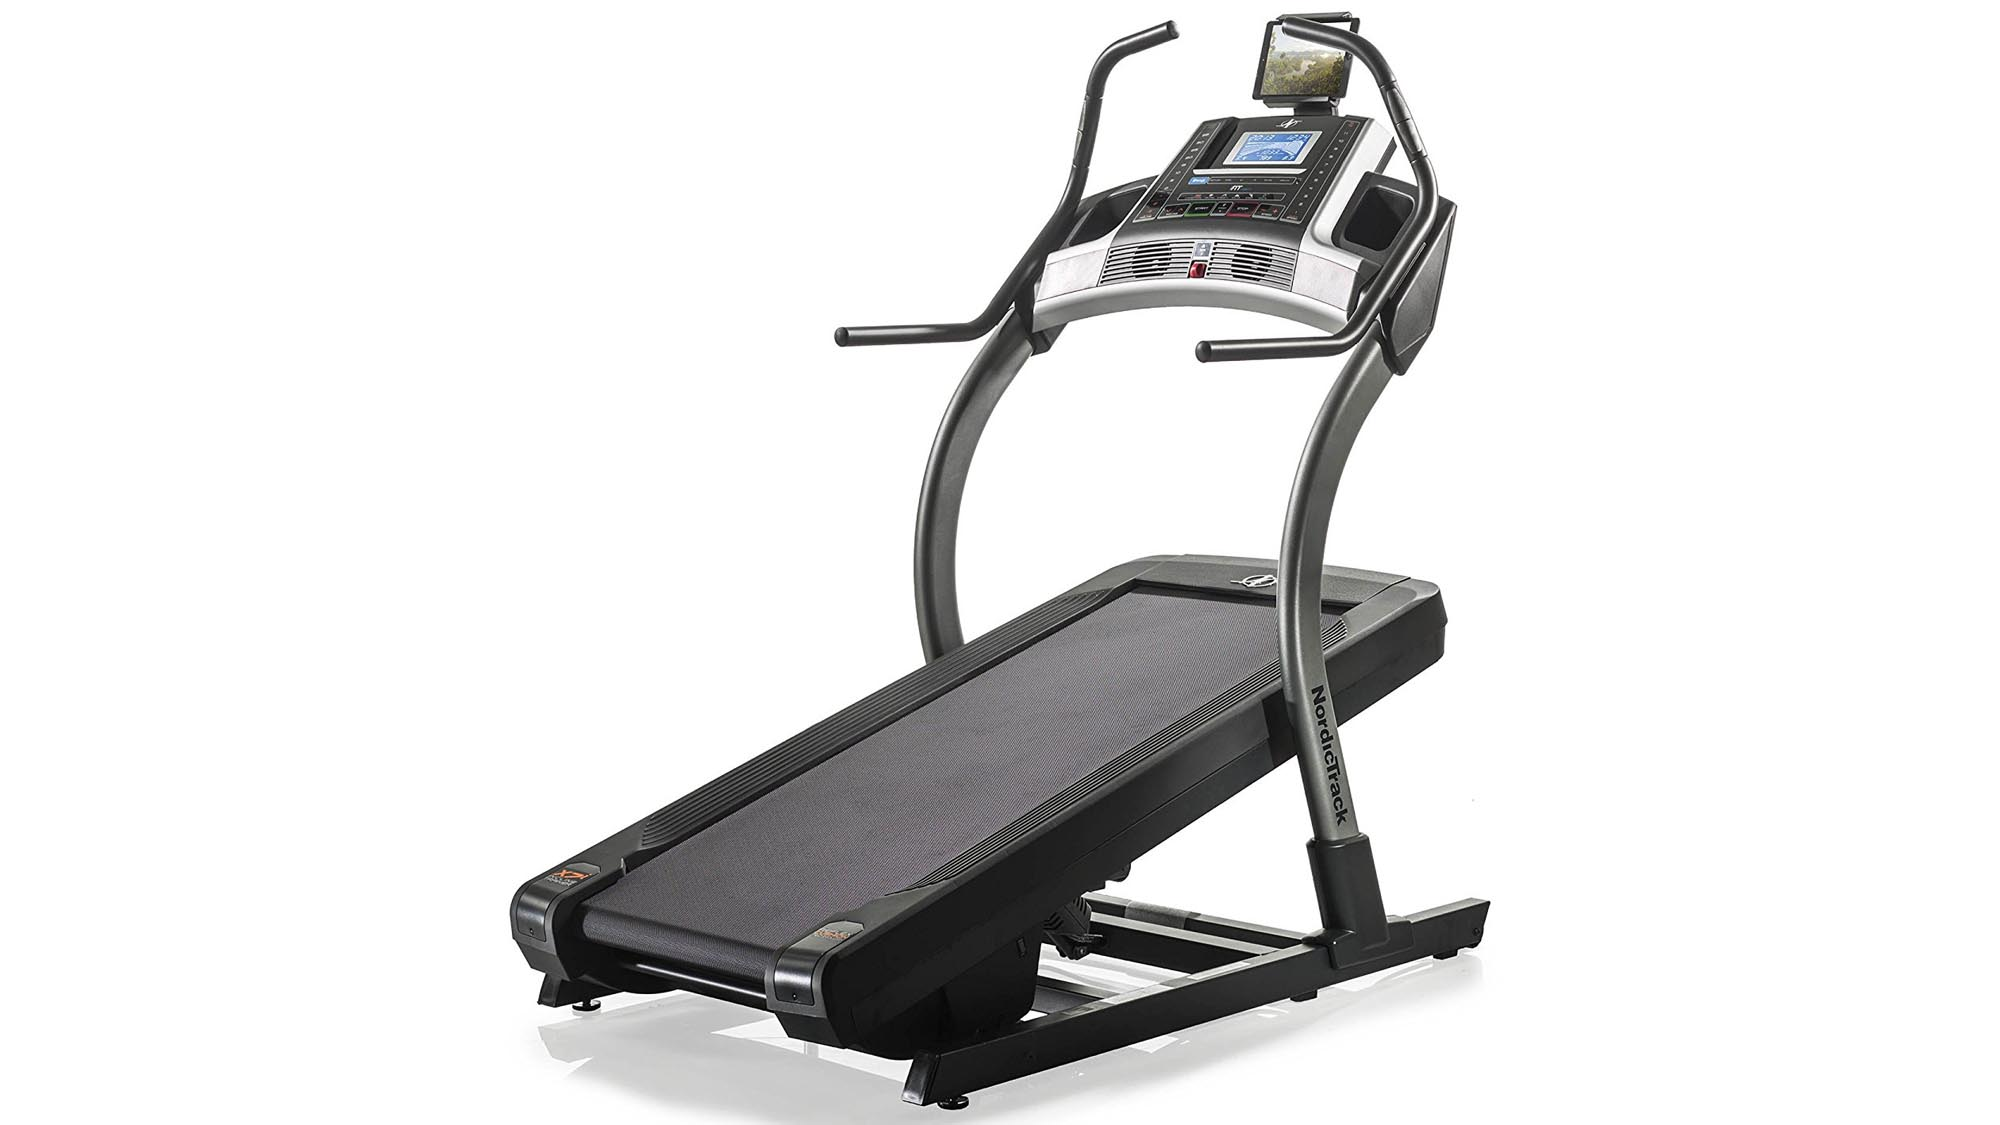 Best Value Treadmill 2021